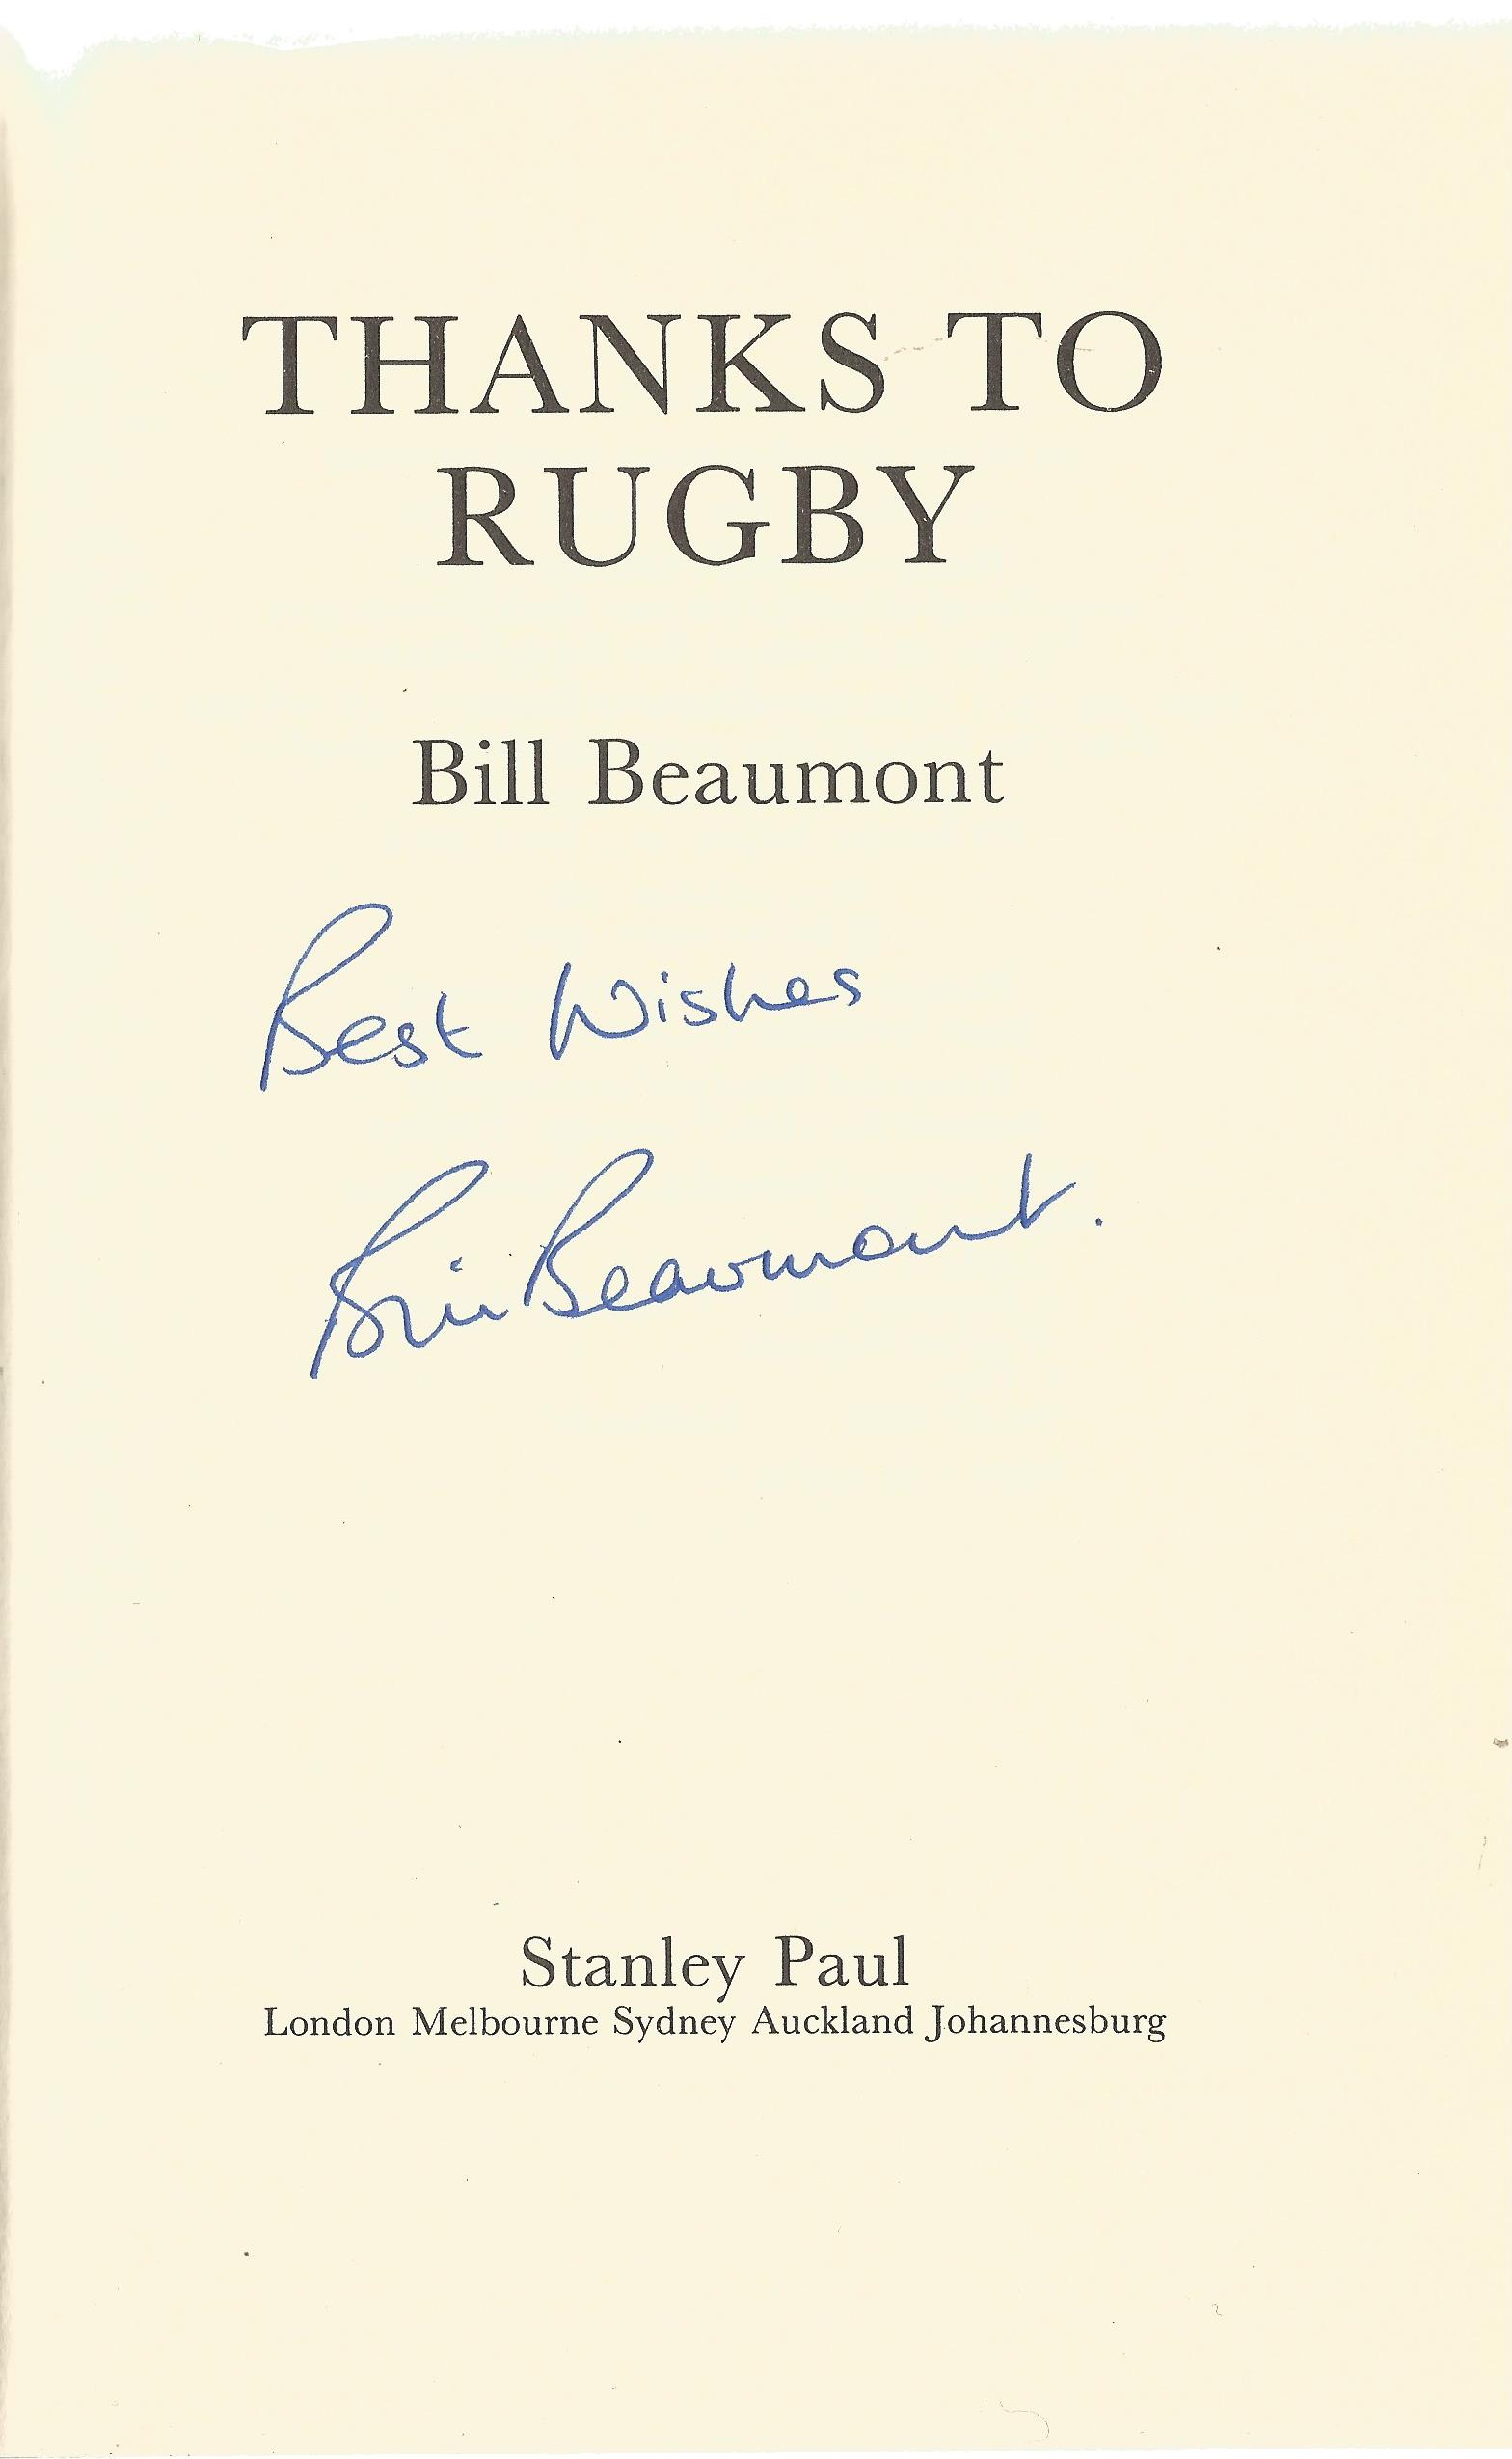 Bill Beaumont Hardback Book Thanks to Rugby an Autobiography signed by the Author on the Title - Image 2 of 2